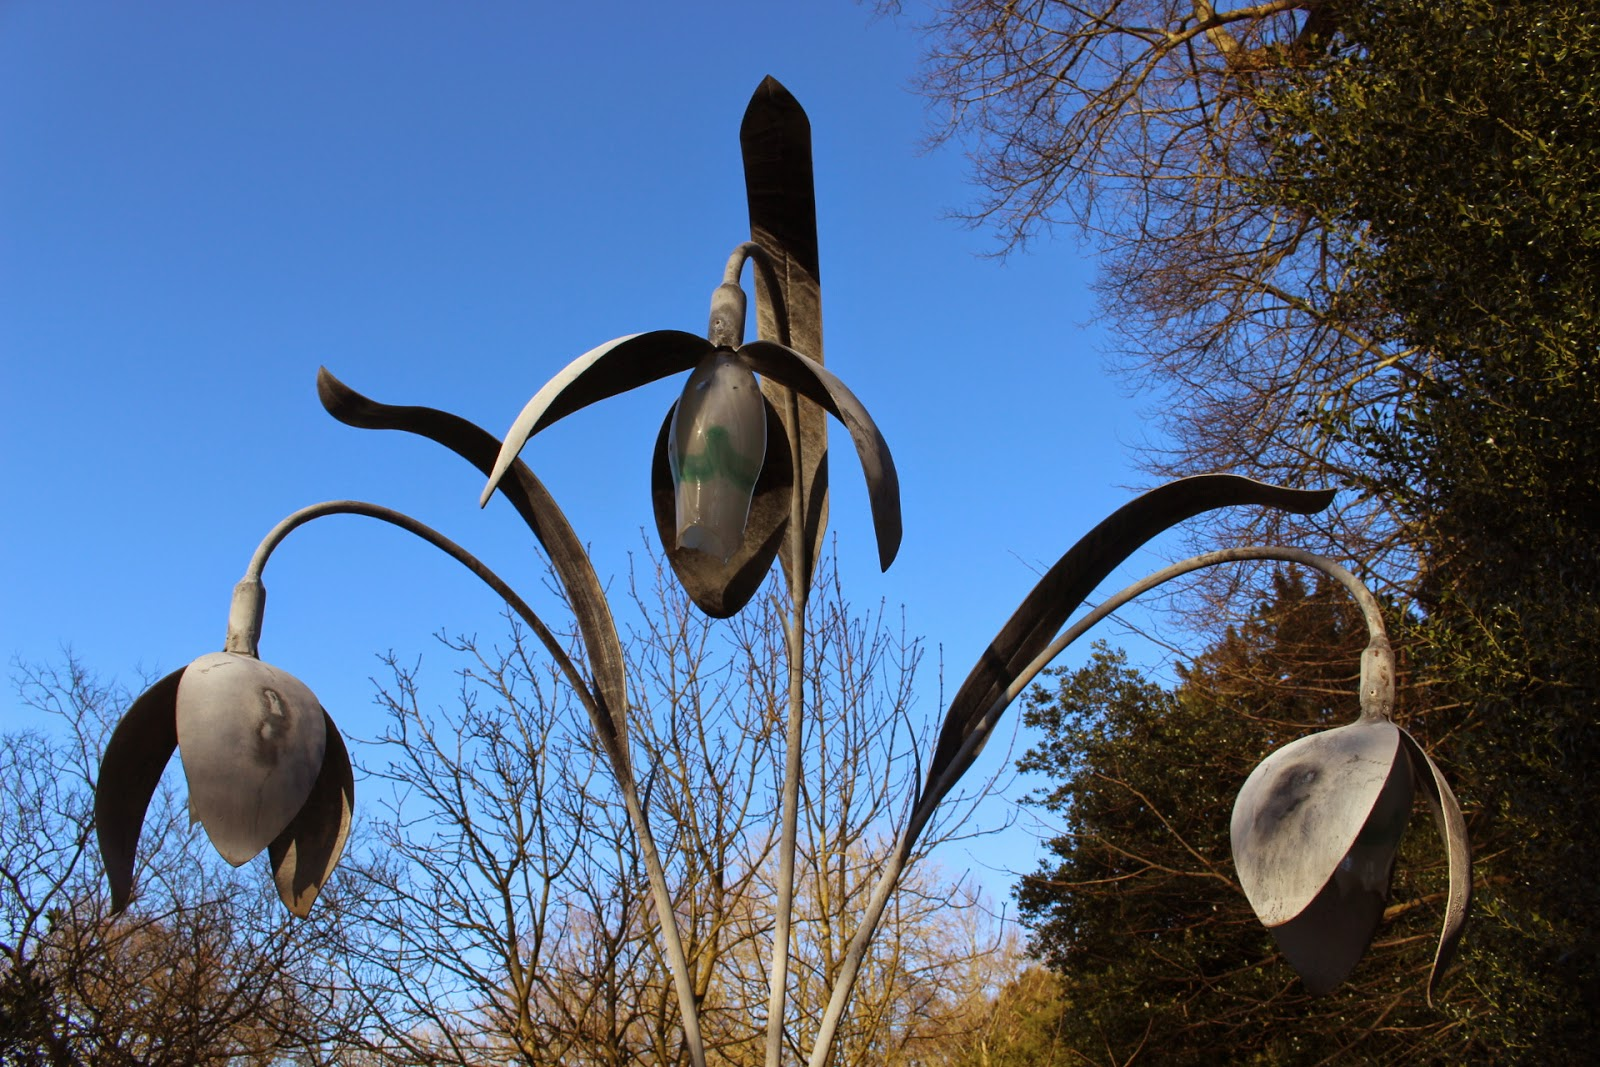 Galanthus sculpture at Lacock Abbey